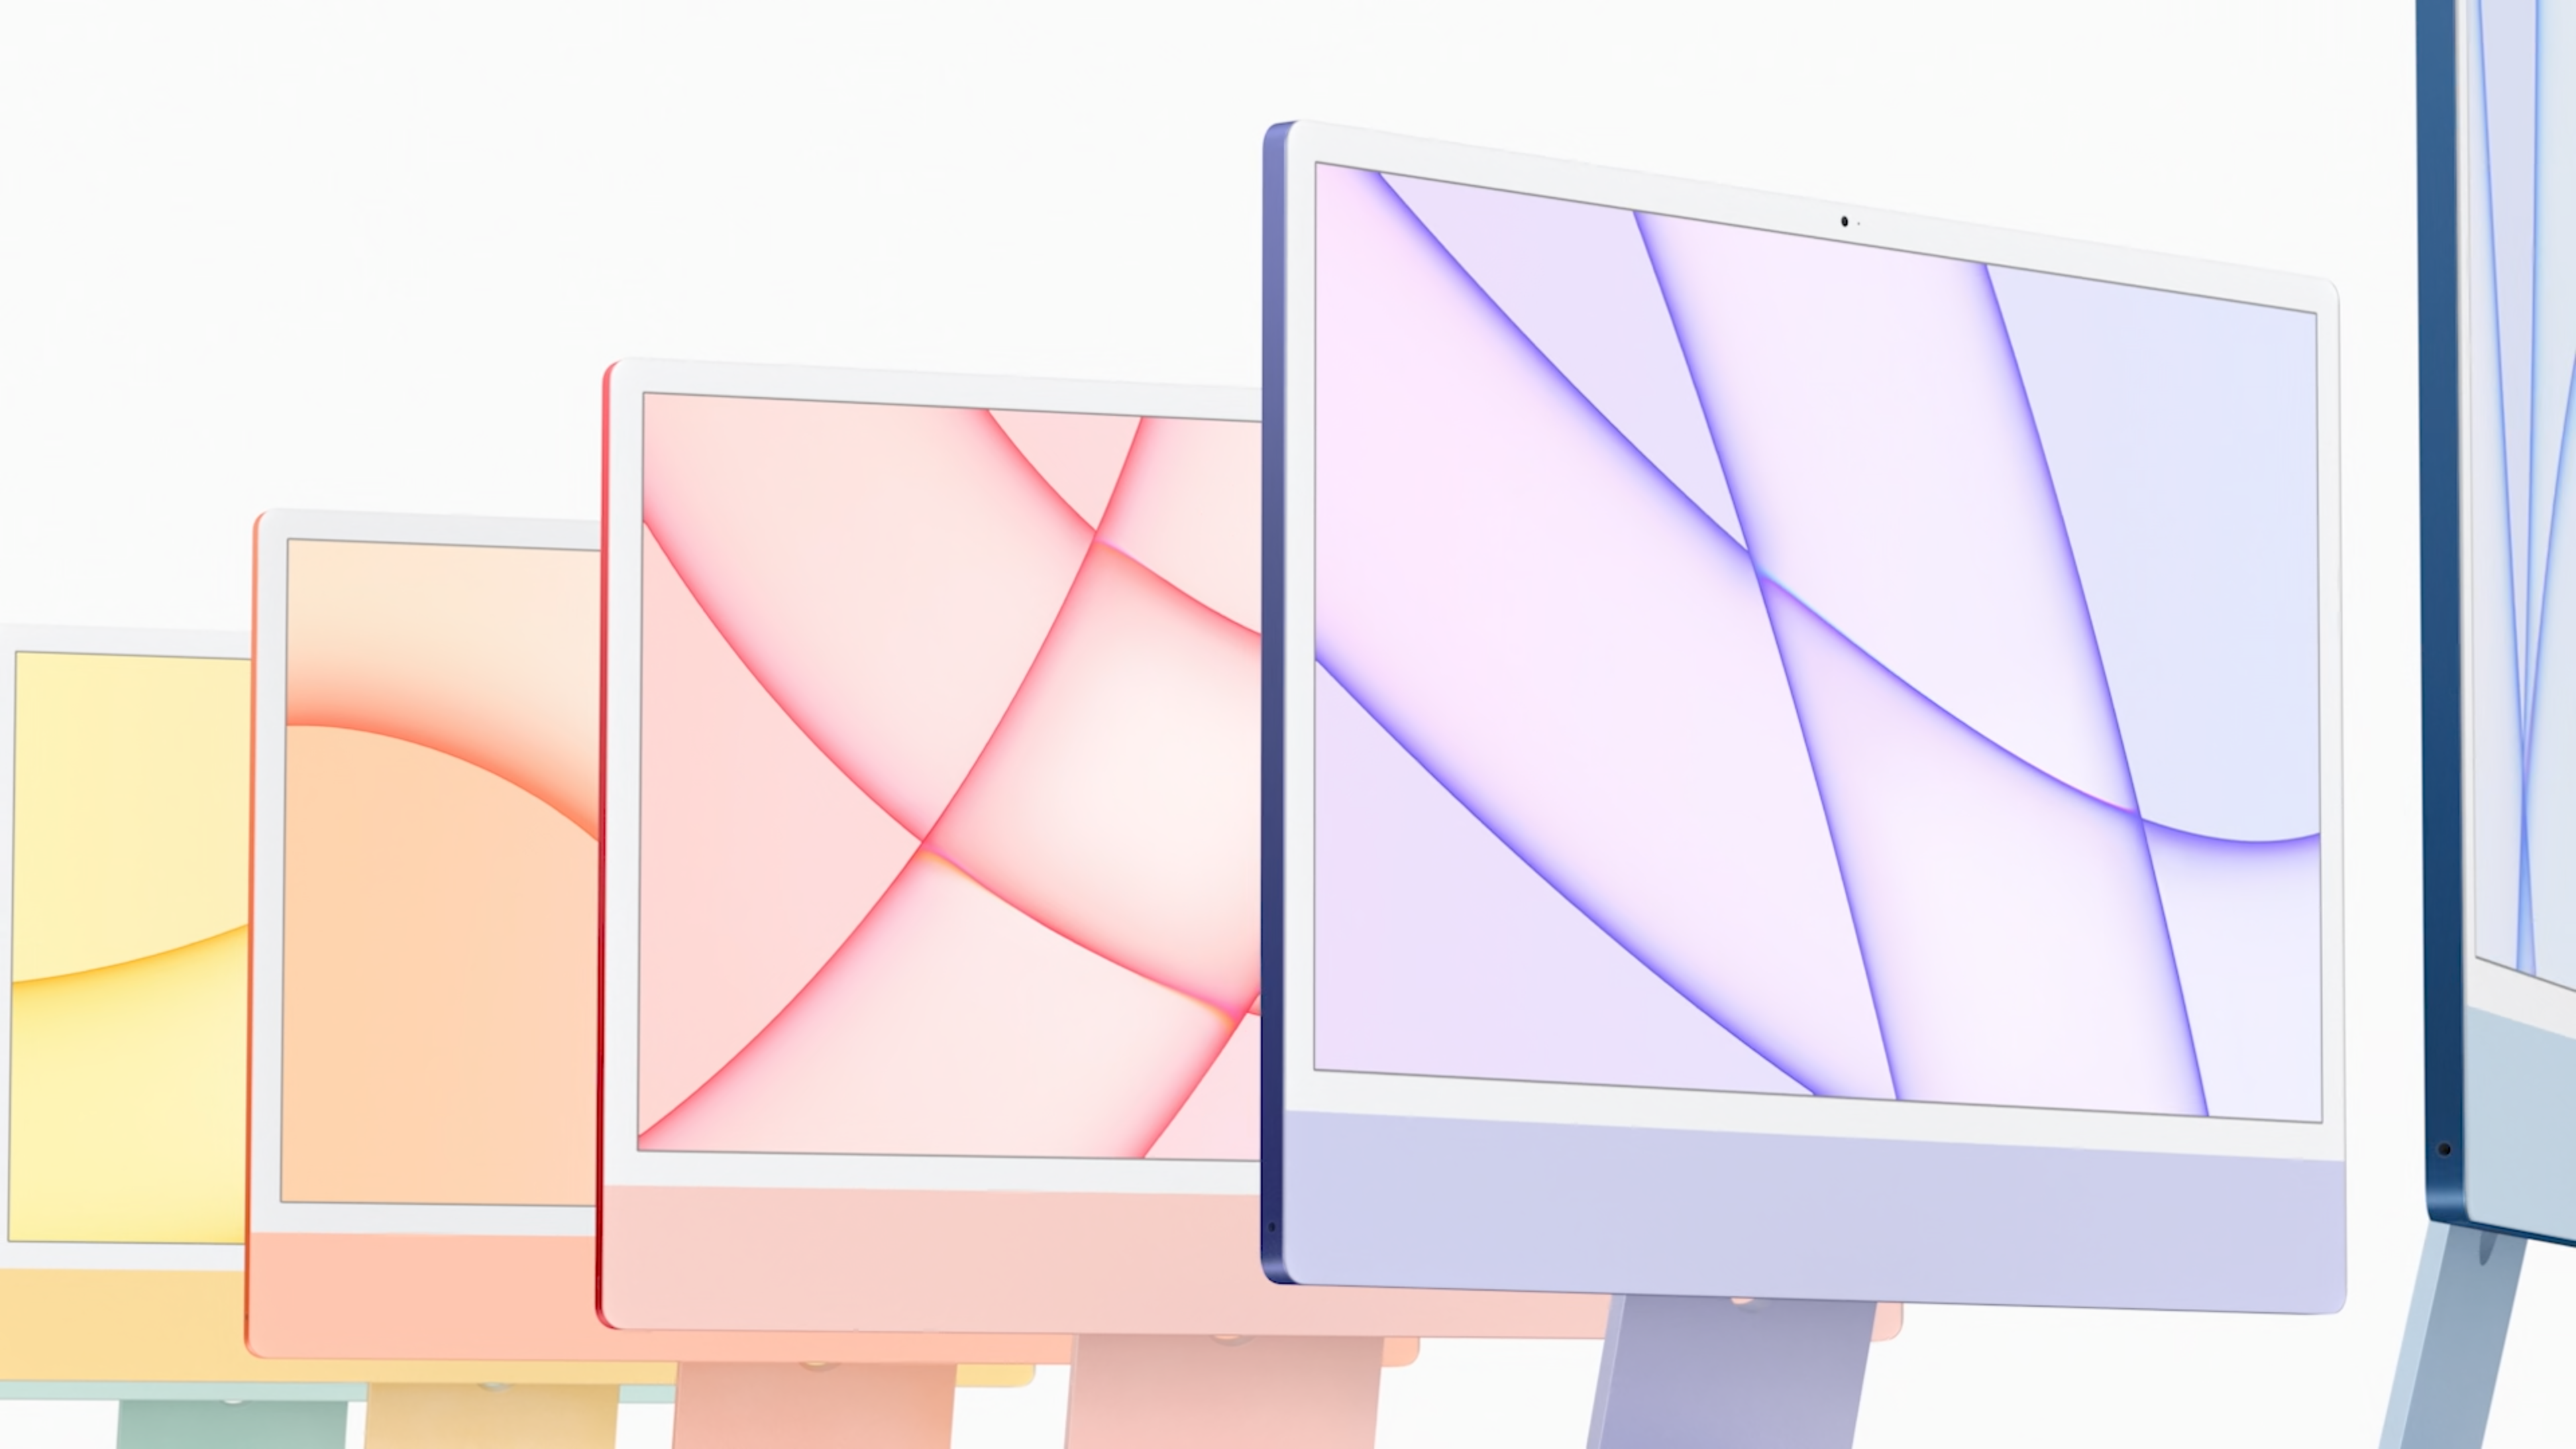 New iMac gets jolt of color in Apple's first redesign since 2012 - CNET